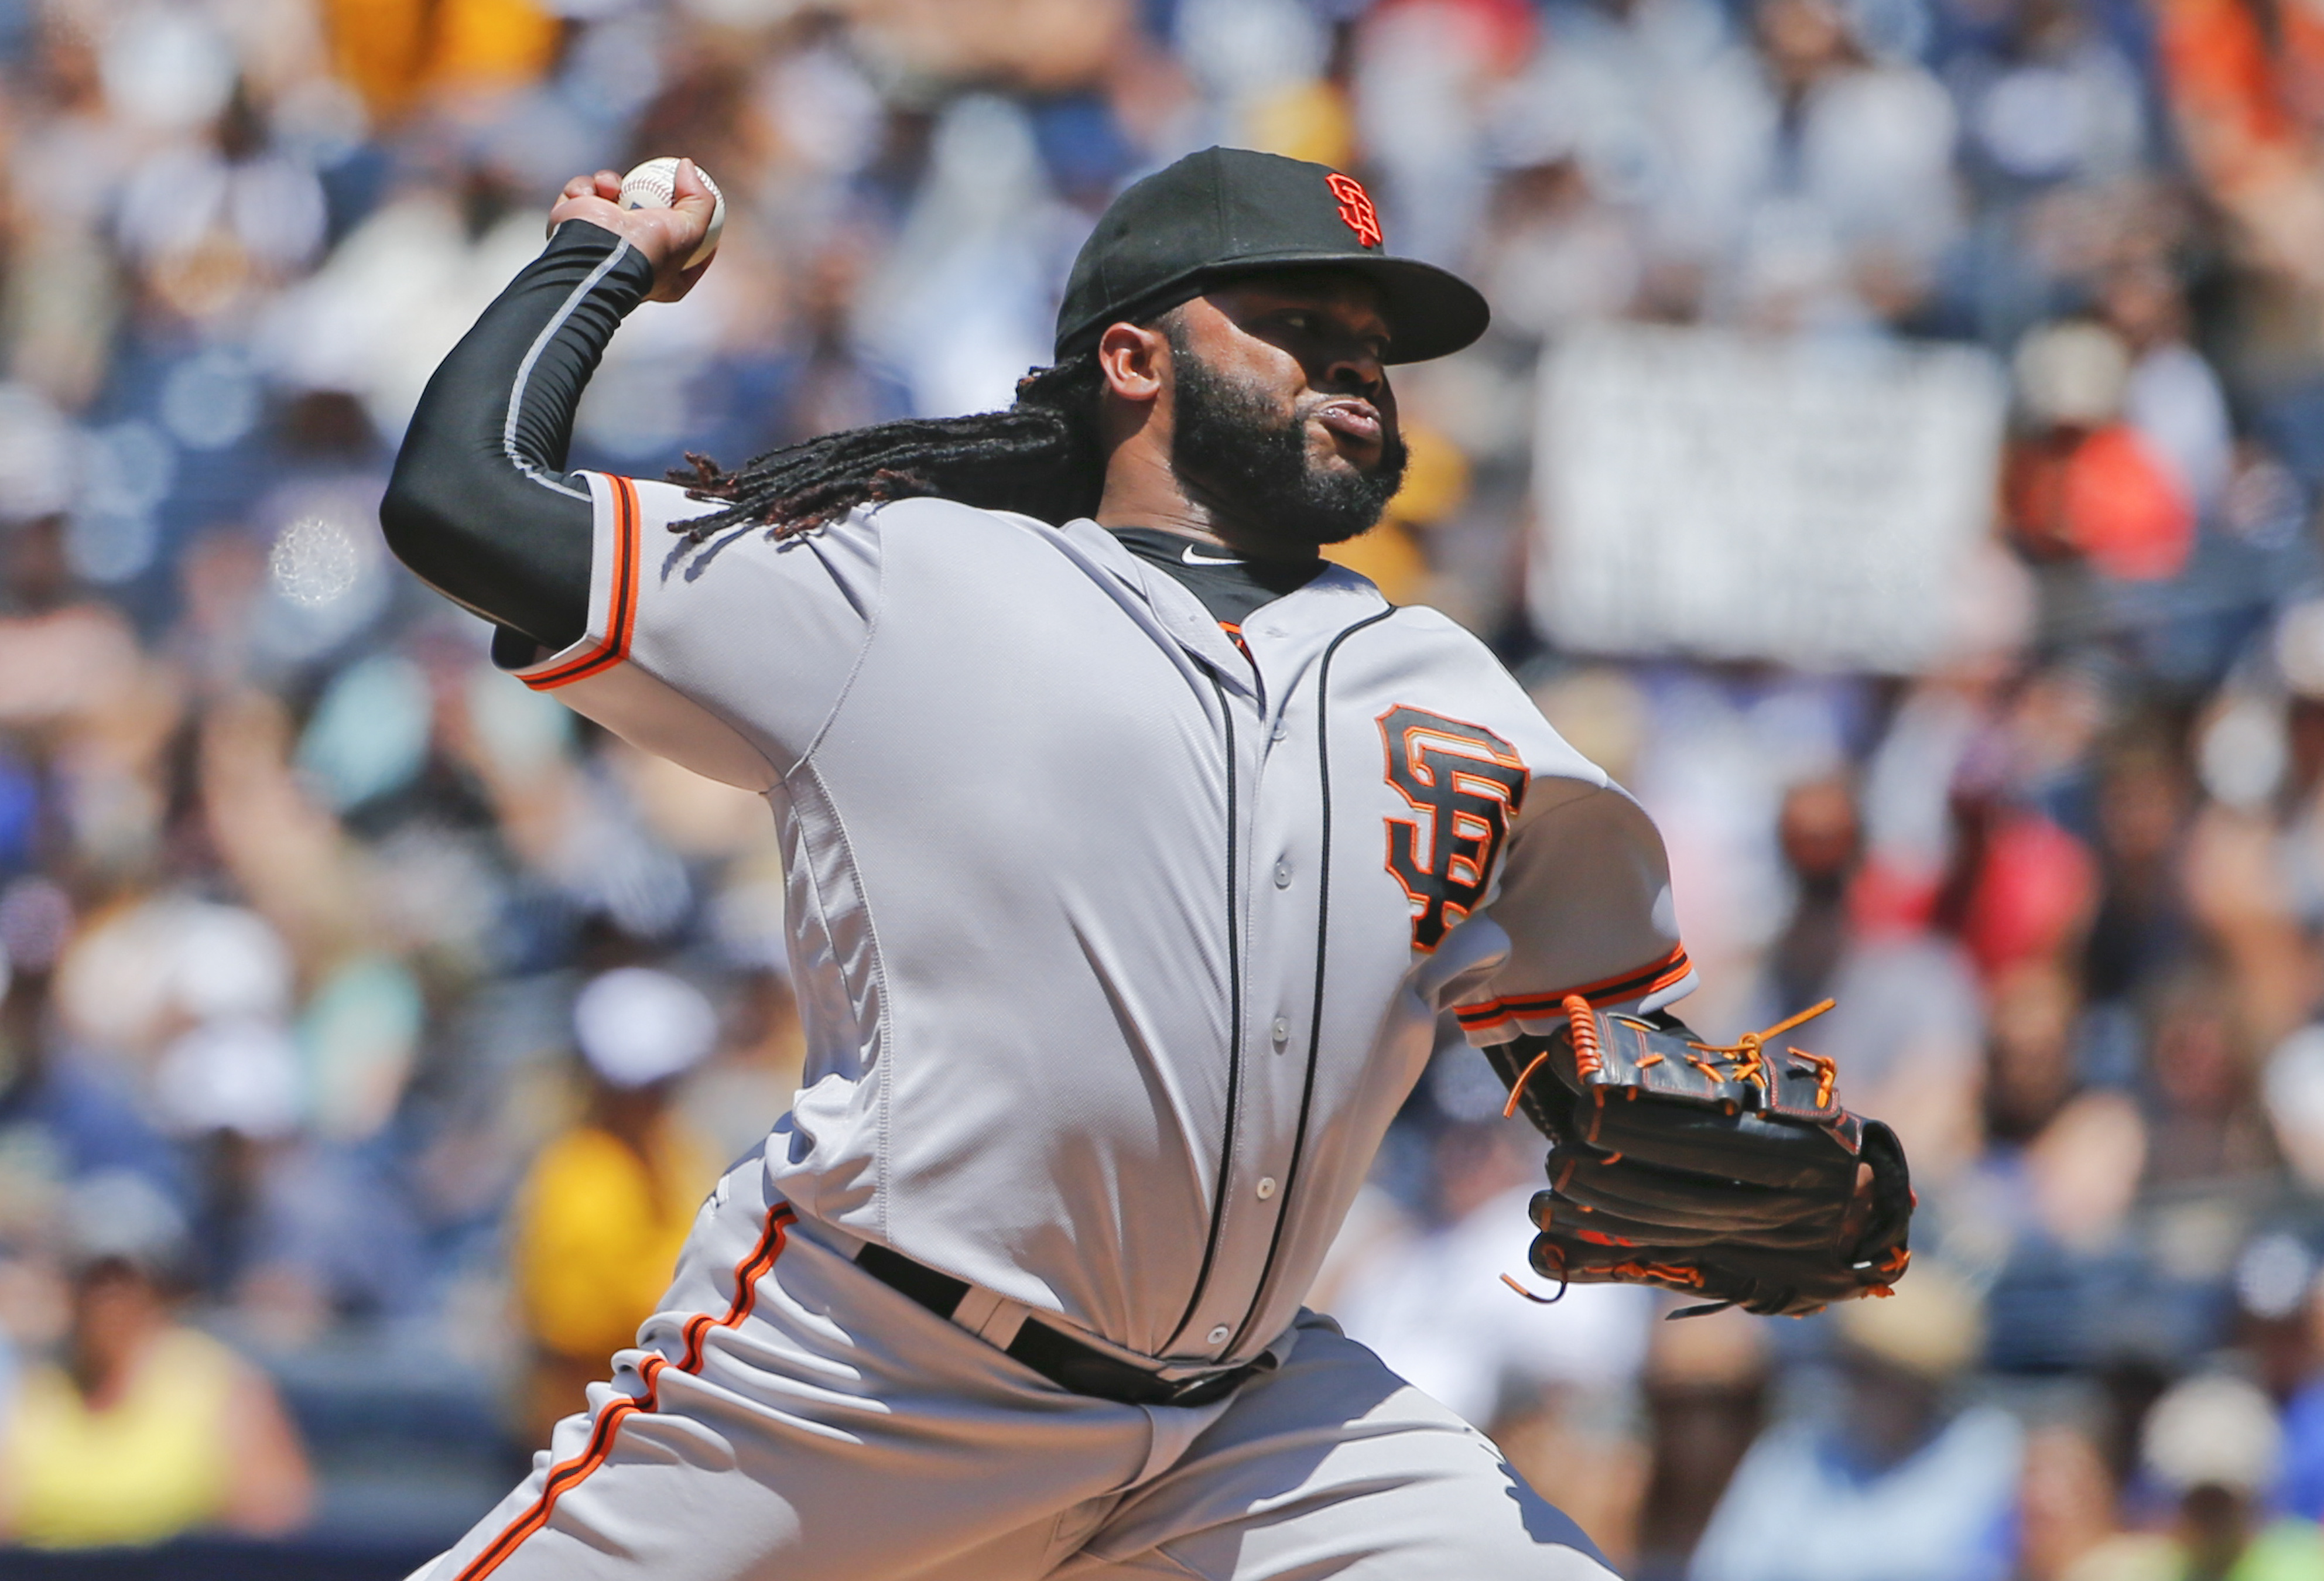 San Francisco Giants starter Johnny Cueto works against the San Diego Padres in the first inning of a baseball game Sunday, July 17, 2016, in San Diego. (AP Photo/Lenny Ignelzi)